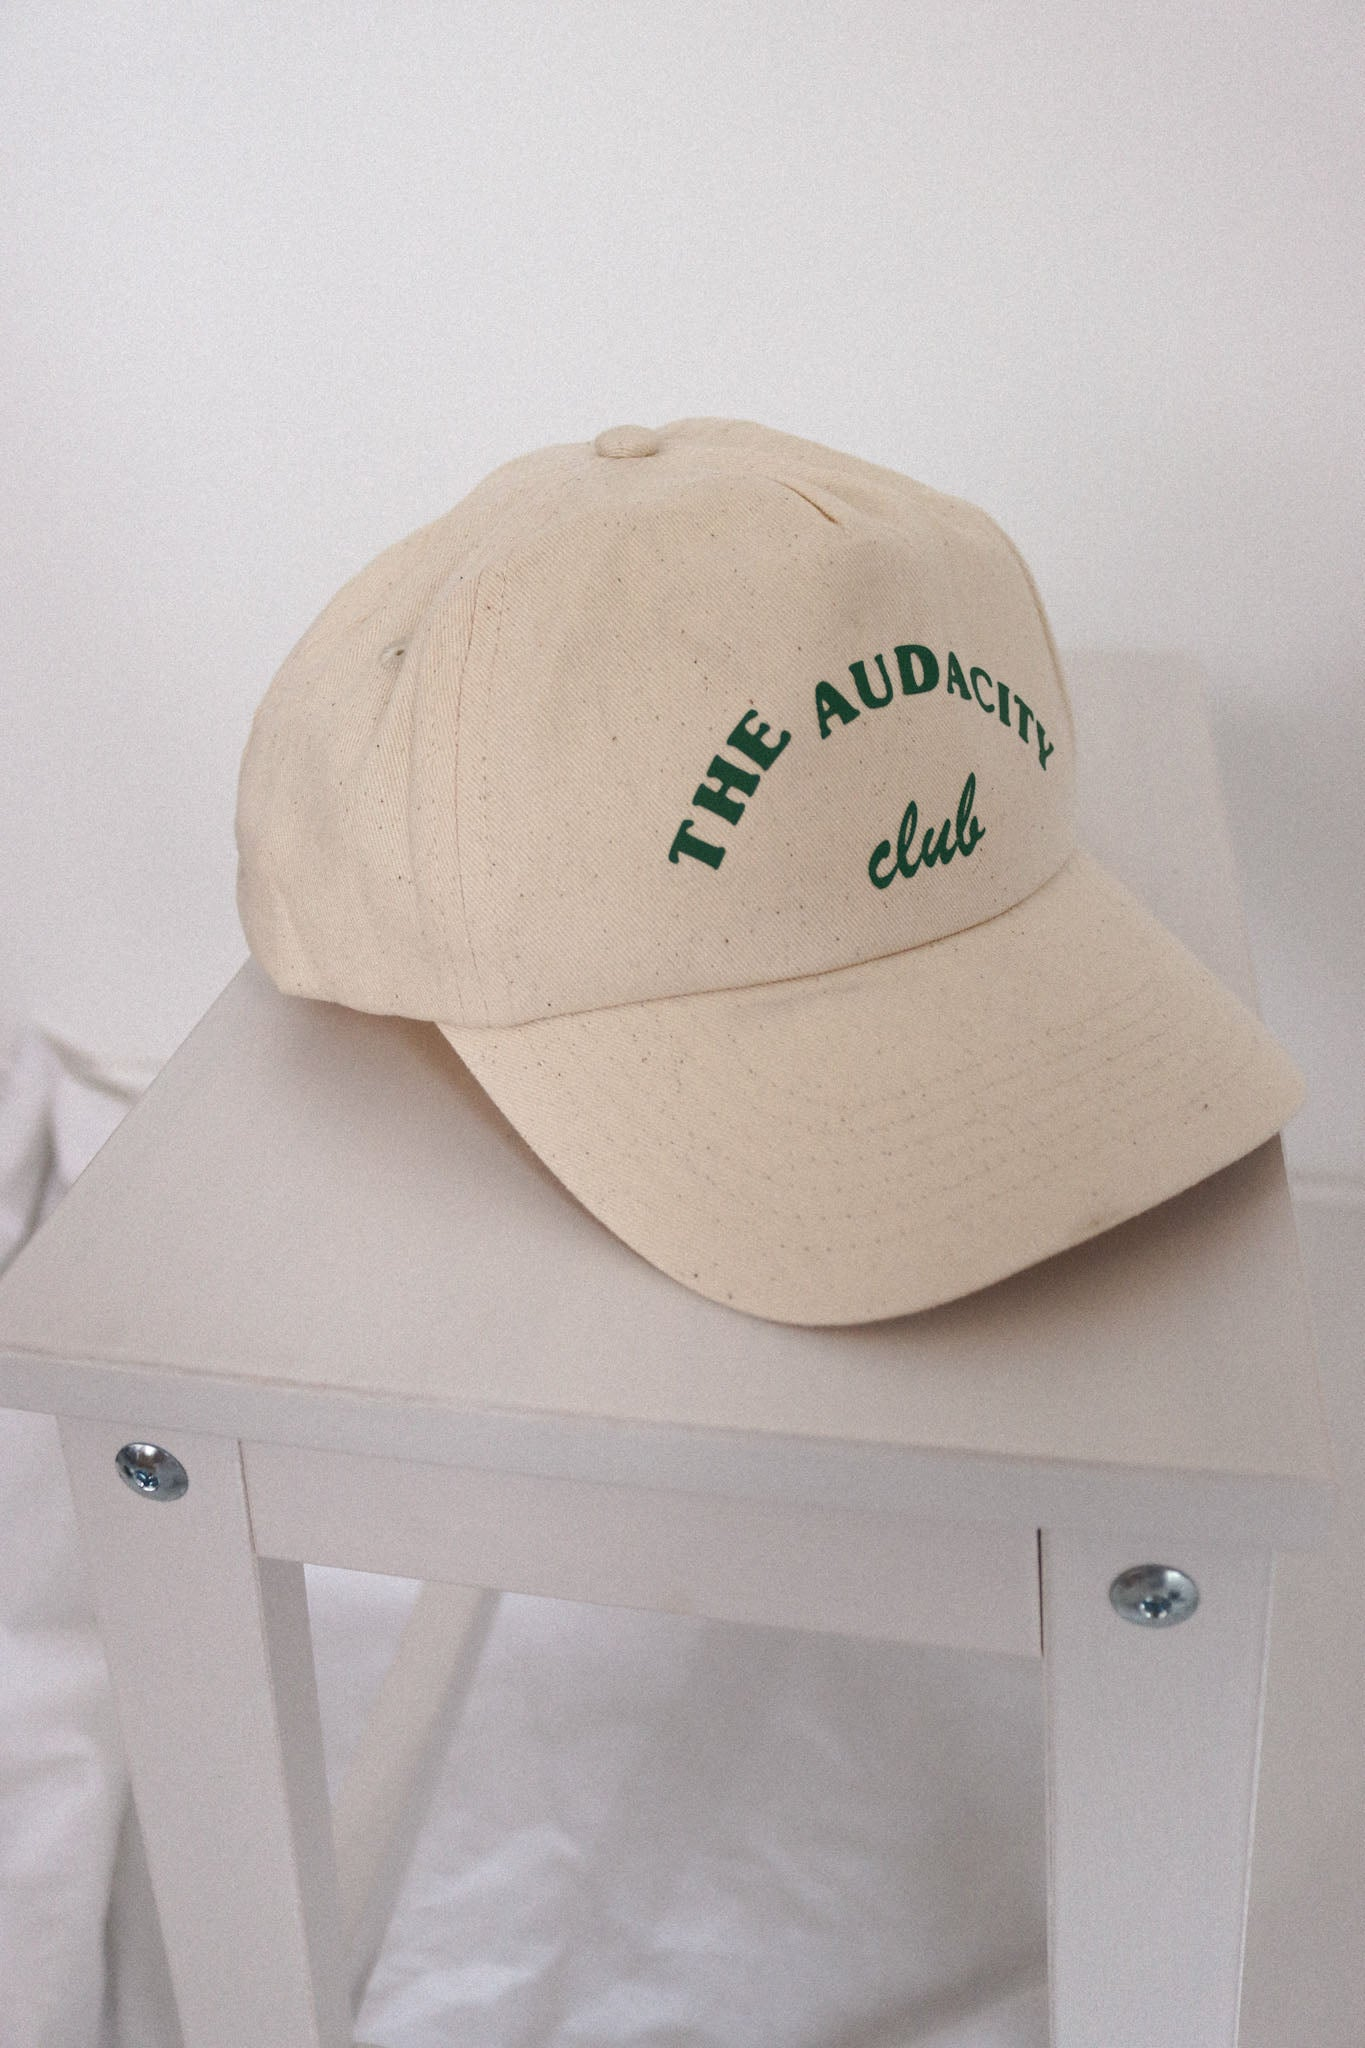 the audacity club cap